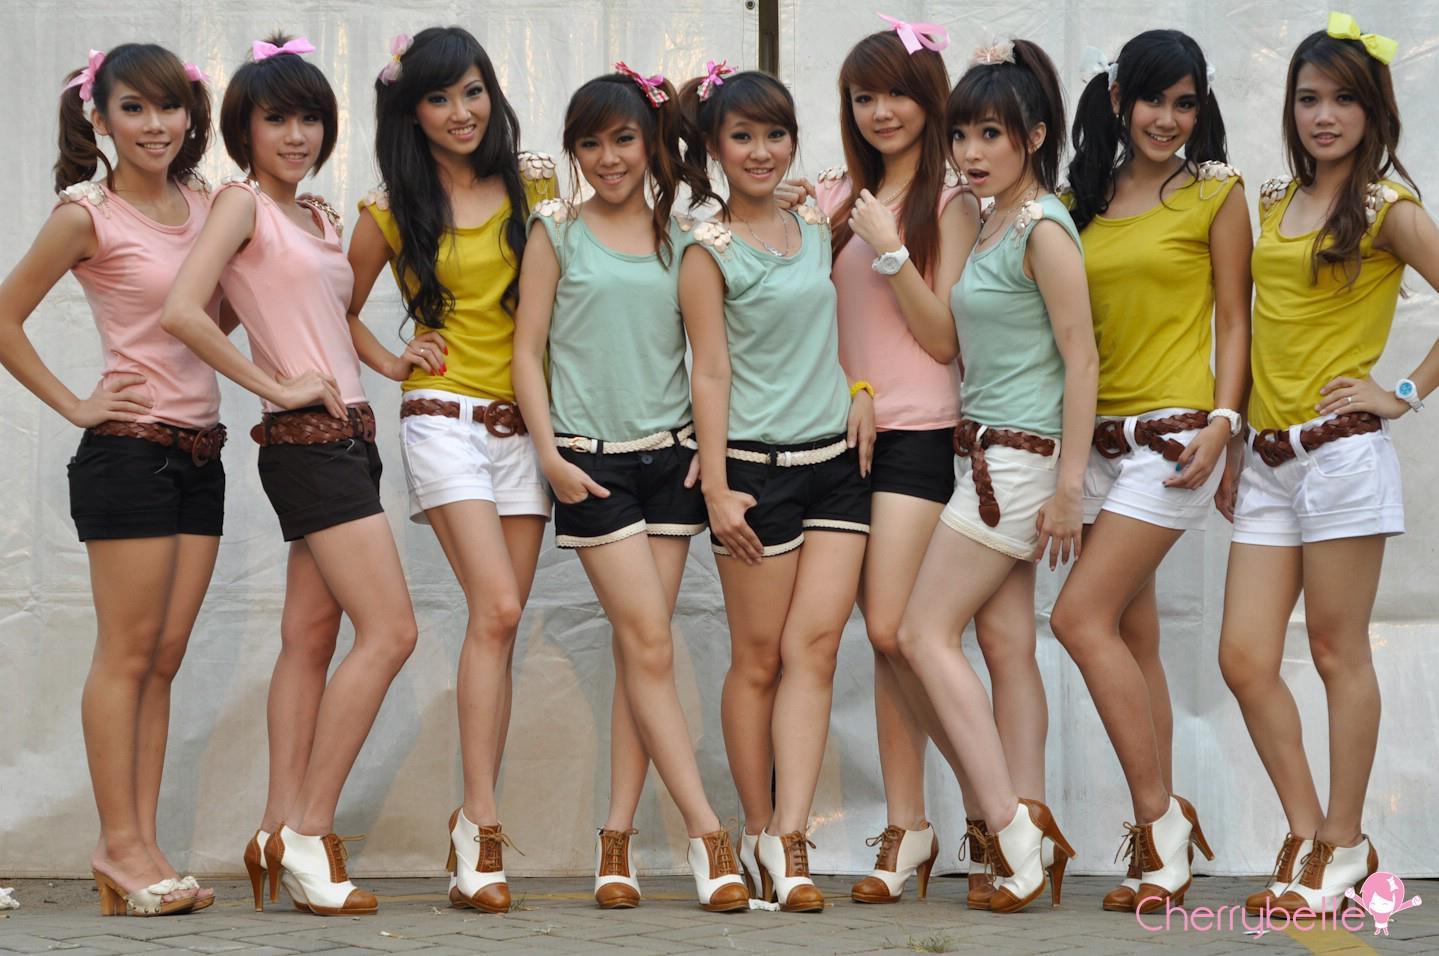 Cherry Belle Wallpaper Cherry Belle x